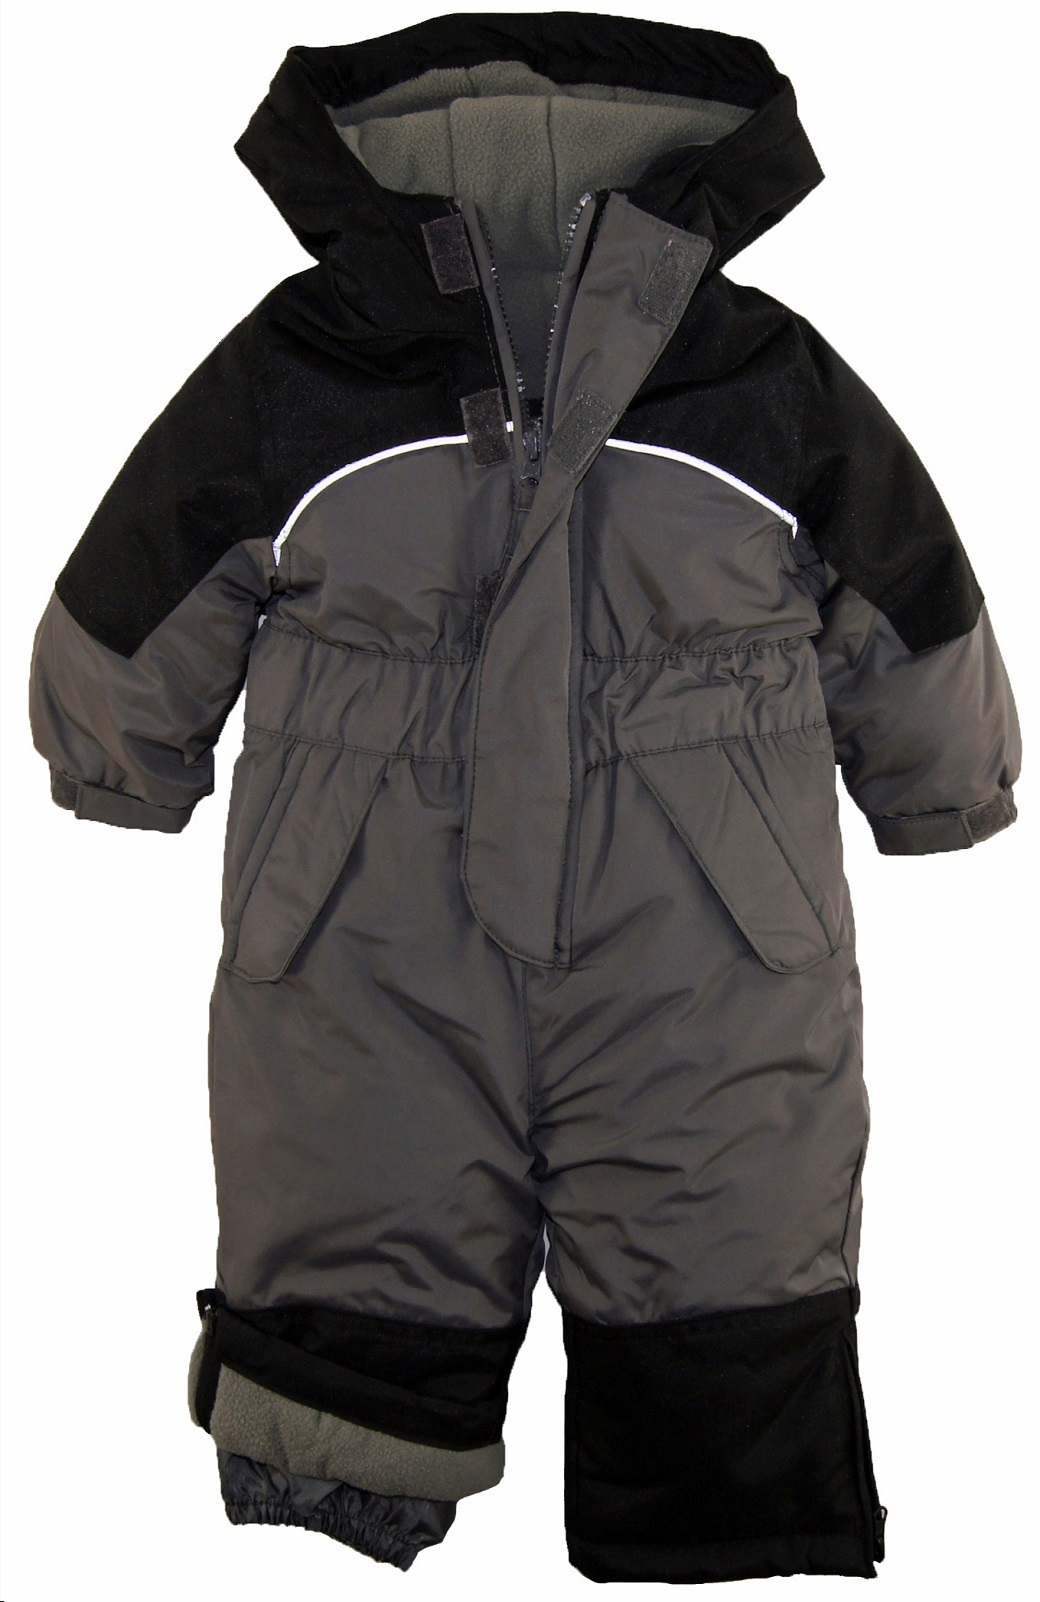 Find great deals on eBay for boys snowsuit. Shop with confidence.